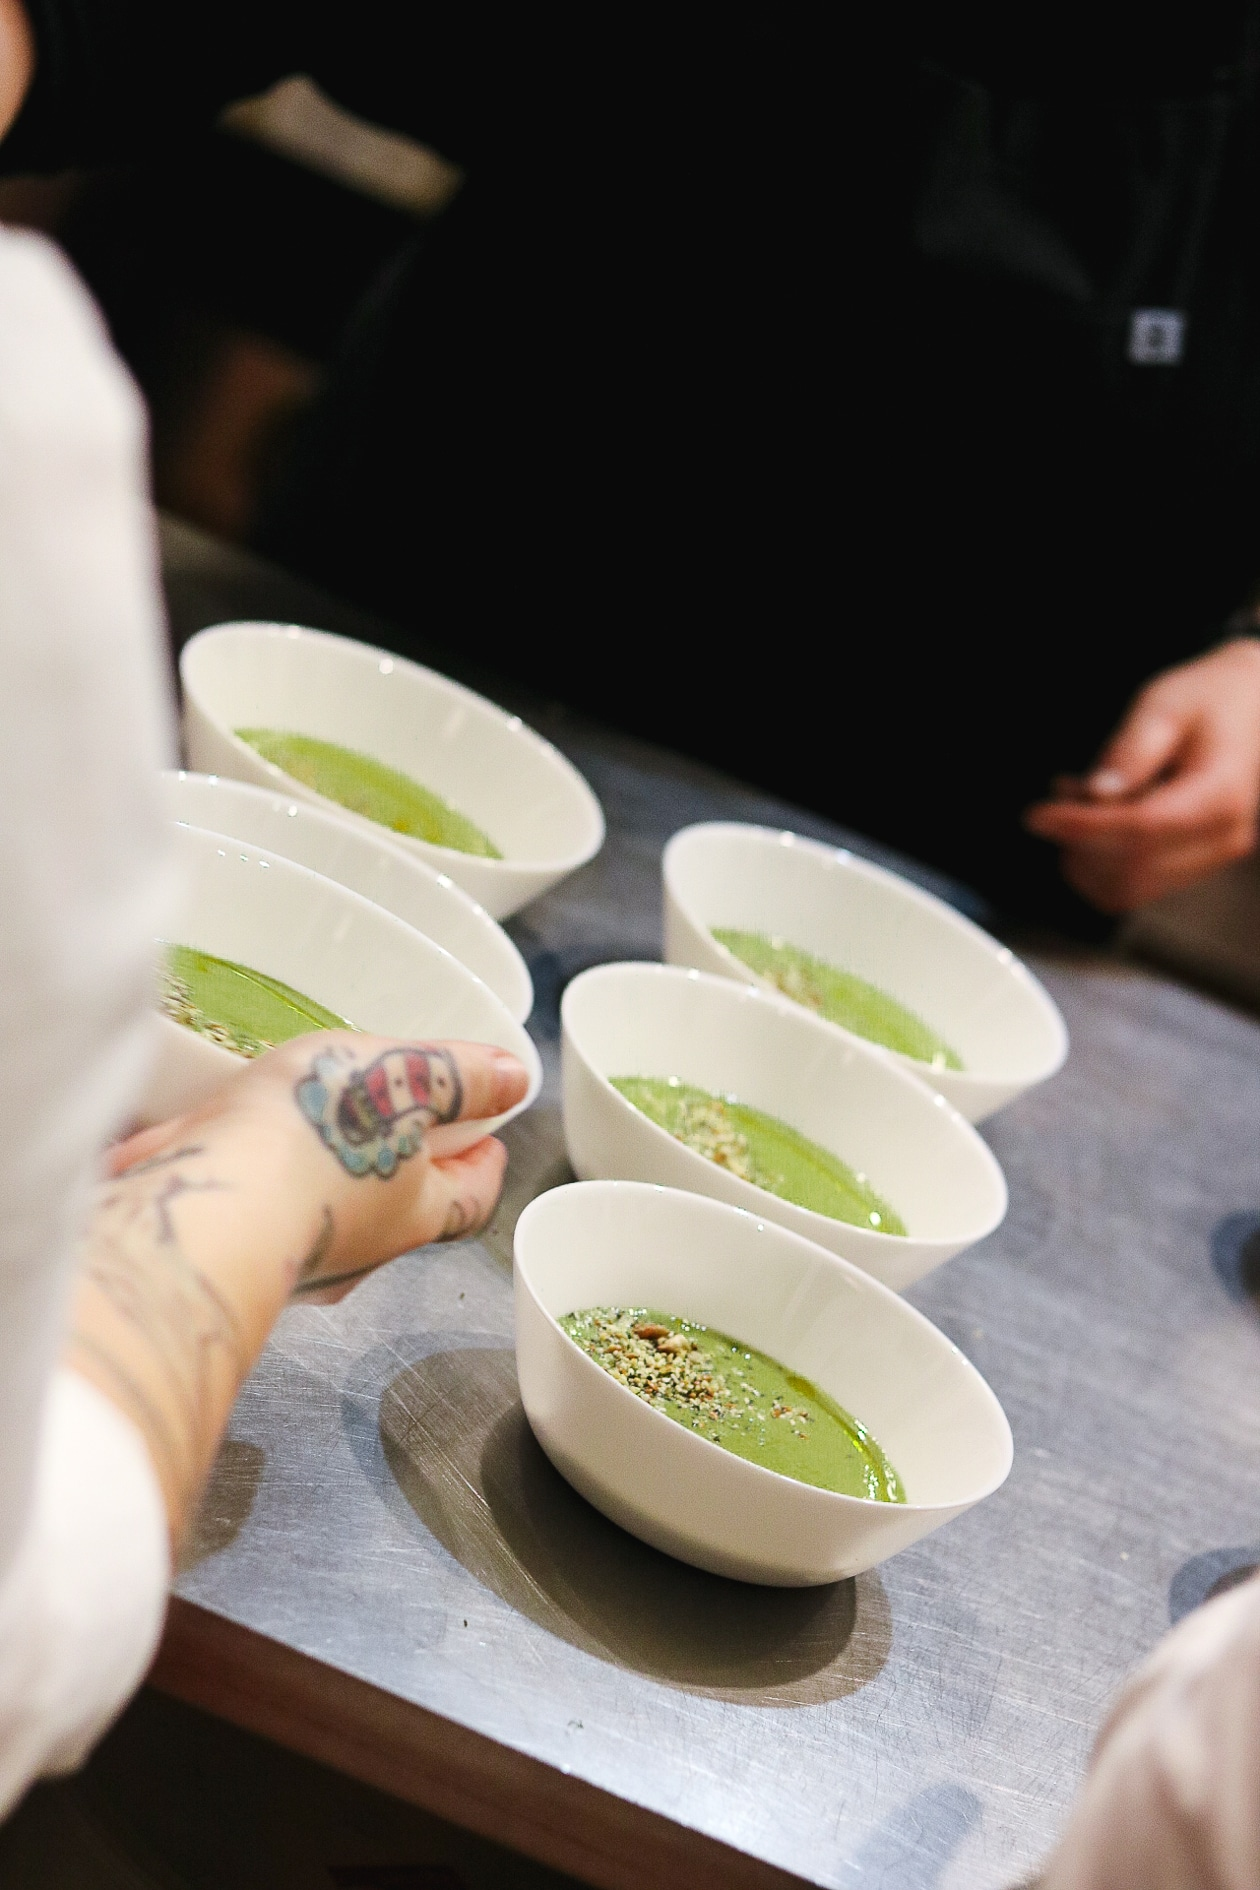 Spring Allium Soup with Hemp Seed Dukkah | Leek, green garlic, scallions, garlic, all the alliums combined for a Chilled spring allium soup. Made naturally gluten-free and vegan with hemp seeds.